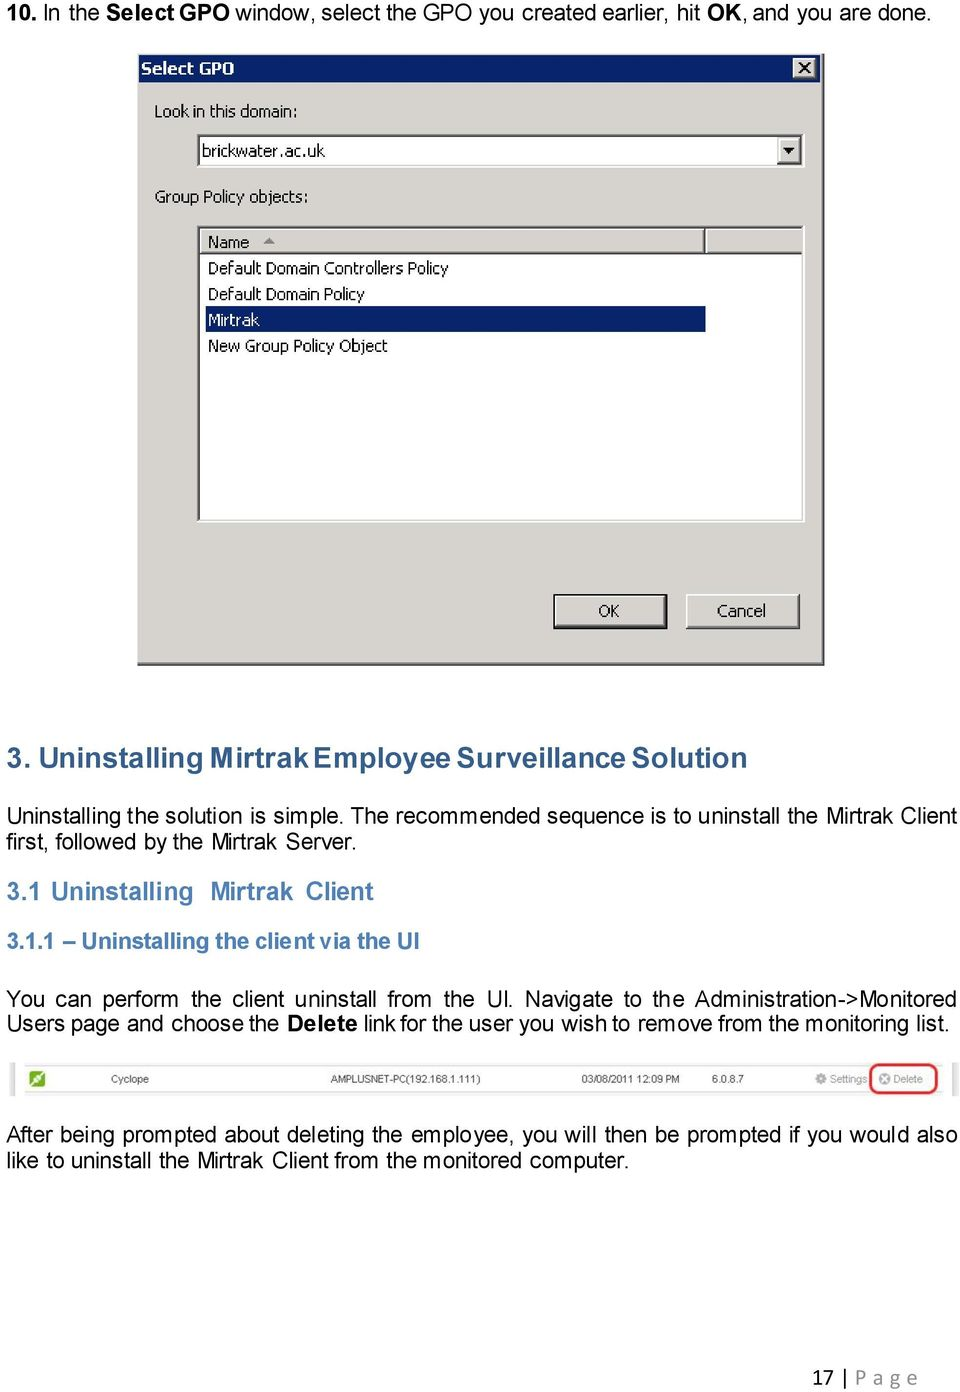 The recommended sequence is to uninstall the Mirtrak Client first, followed by the Mirtrak Server. 3.1